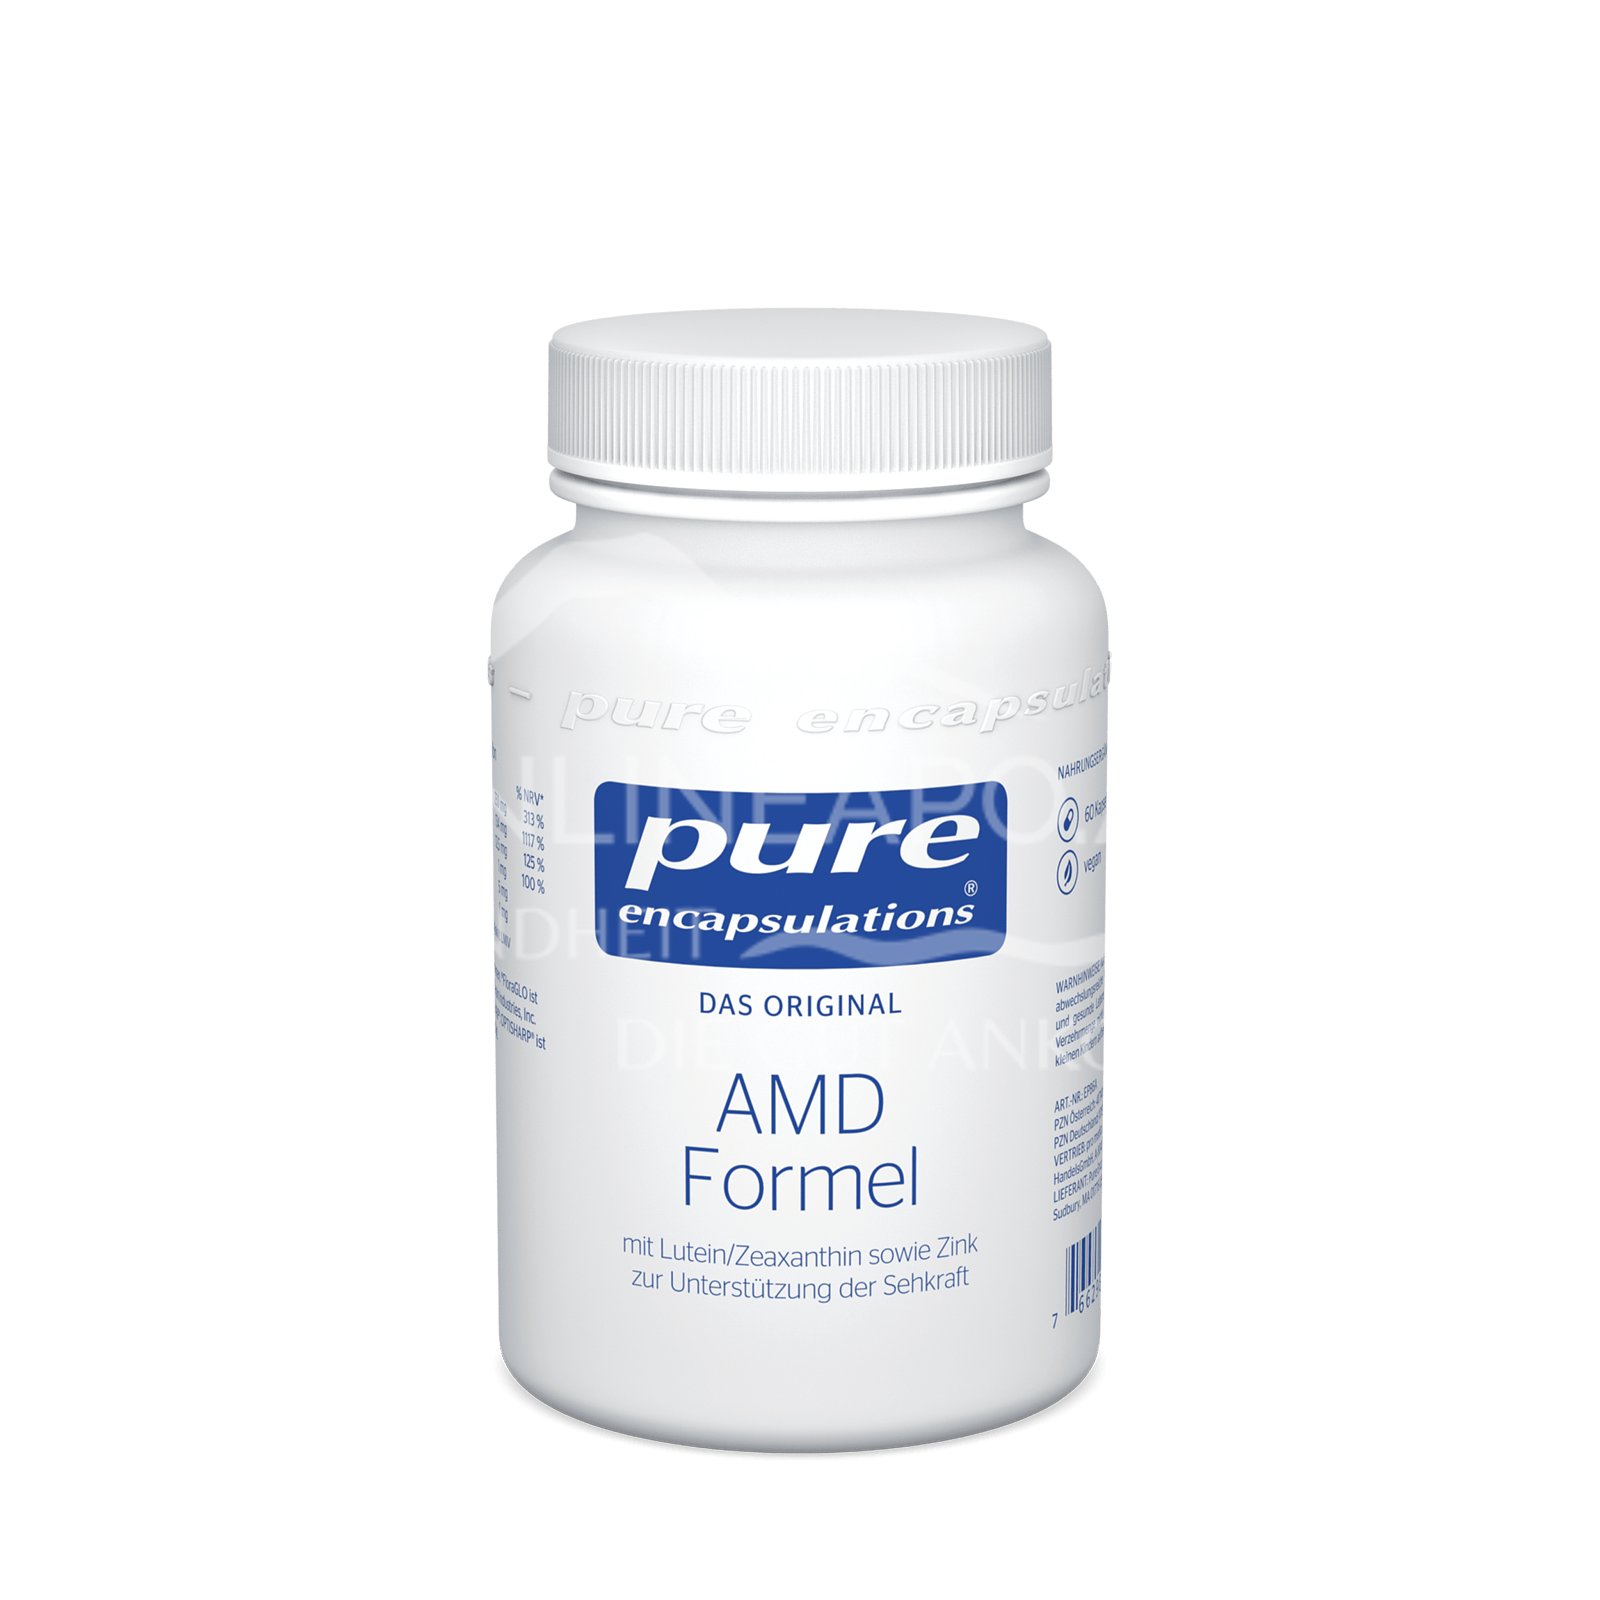 pure encapsulations® AMD Formel